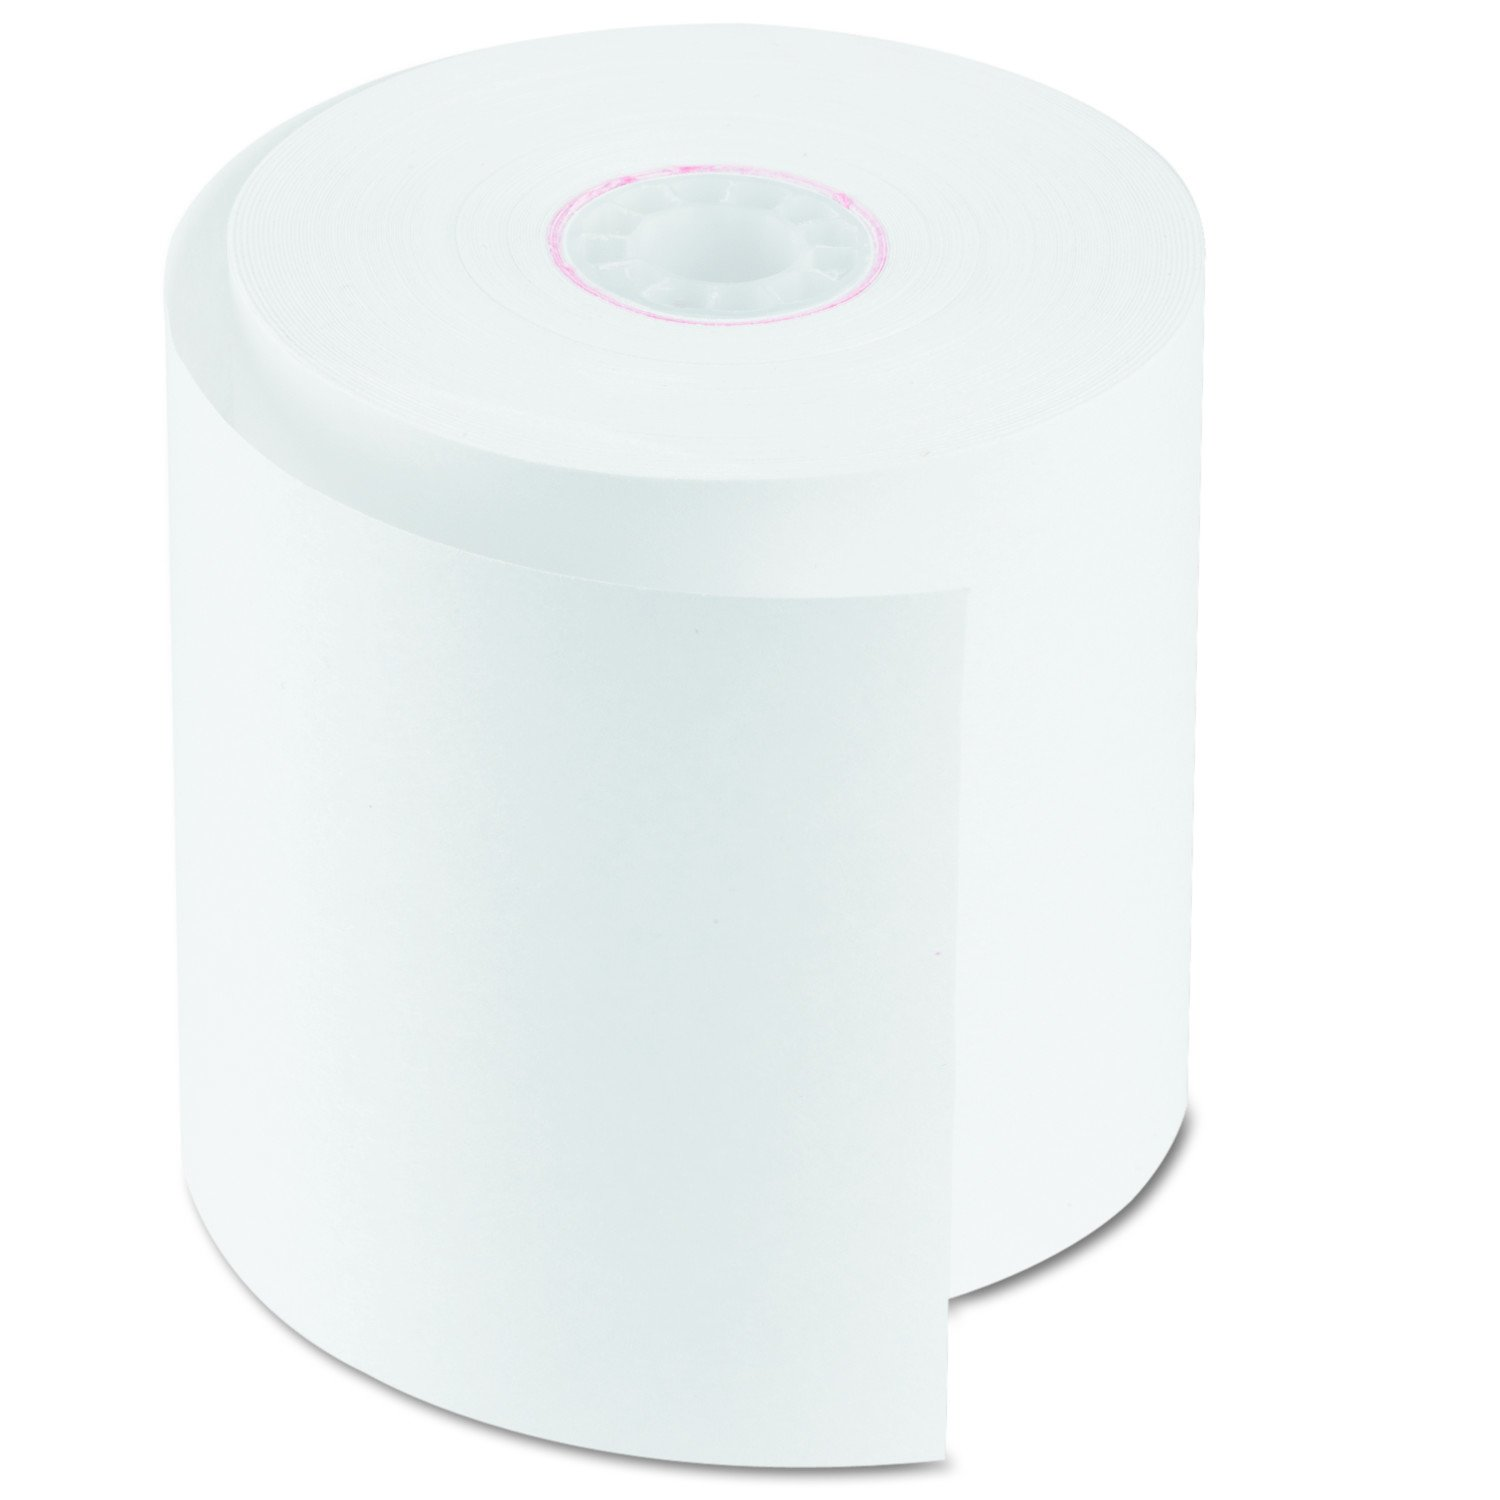 PM Company Item One Ply White Bond Rolls - 50 Rolls/Carton, 2 3/4 Inches x 150 Feet (07701)